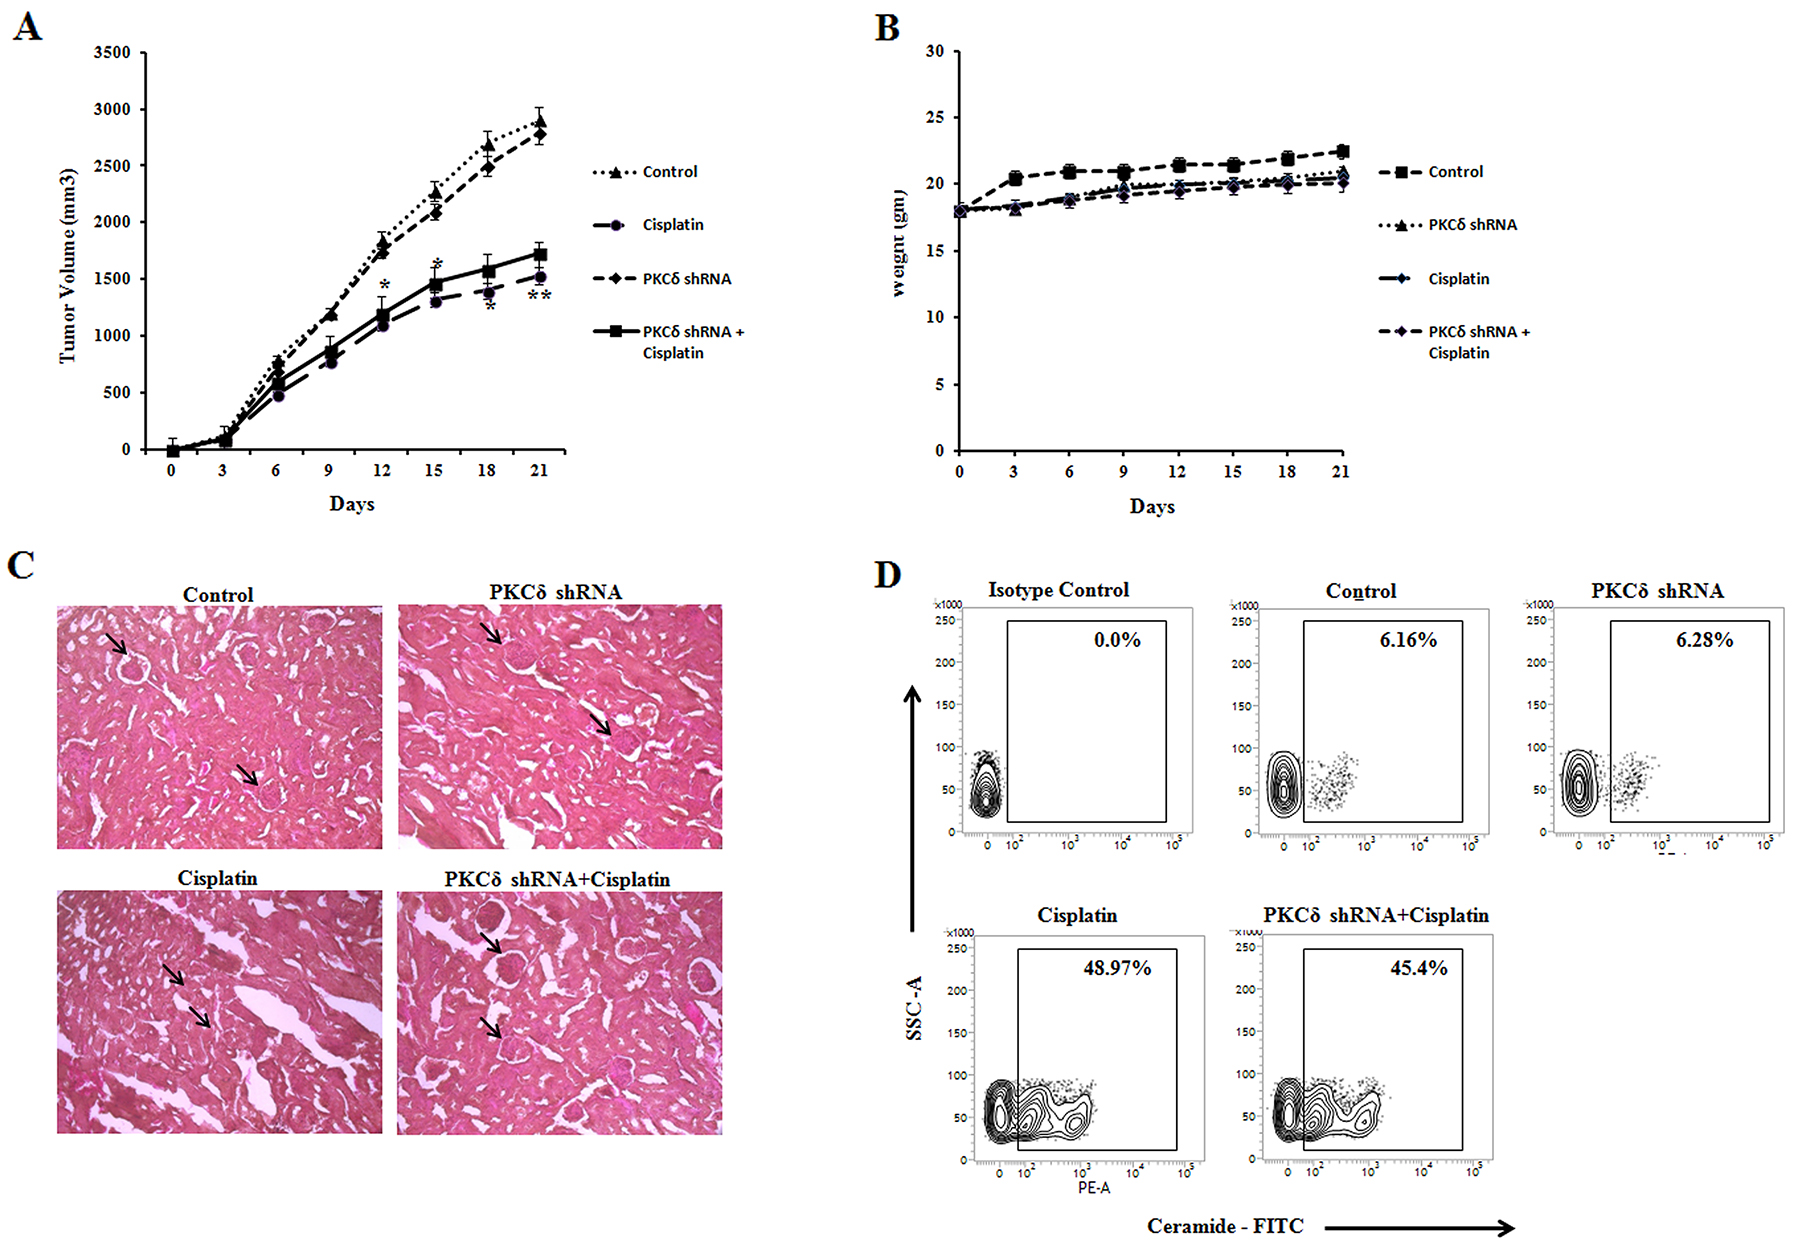 Effect of cisplatin treatment in PKCδ inhibited melanoma tumor growth in vivo.